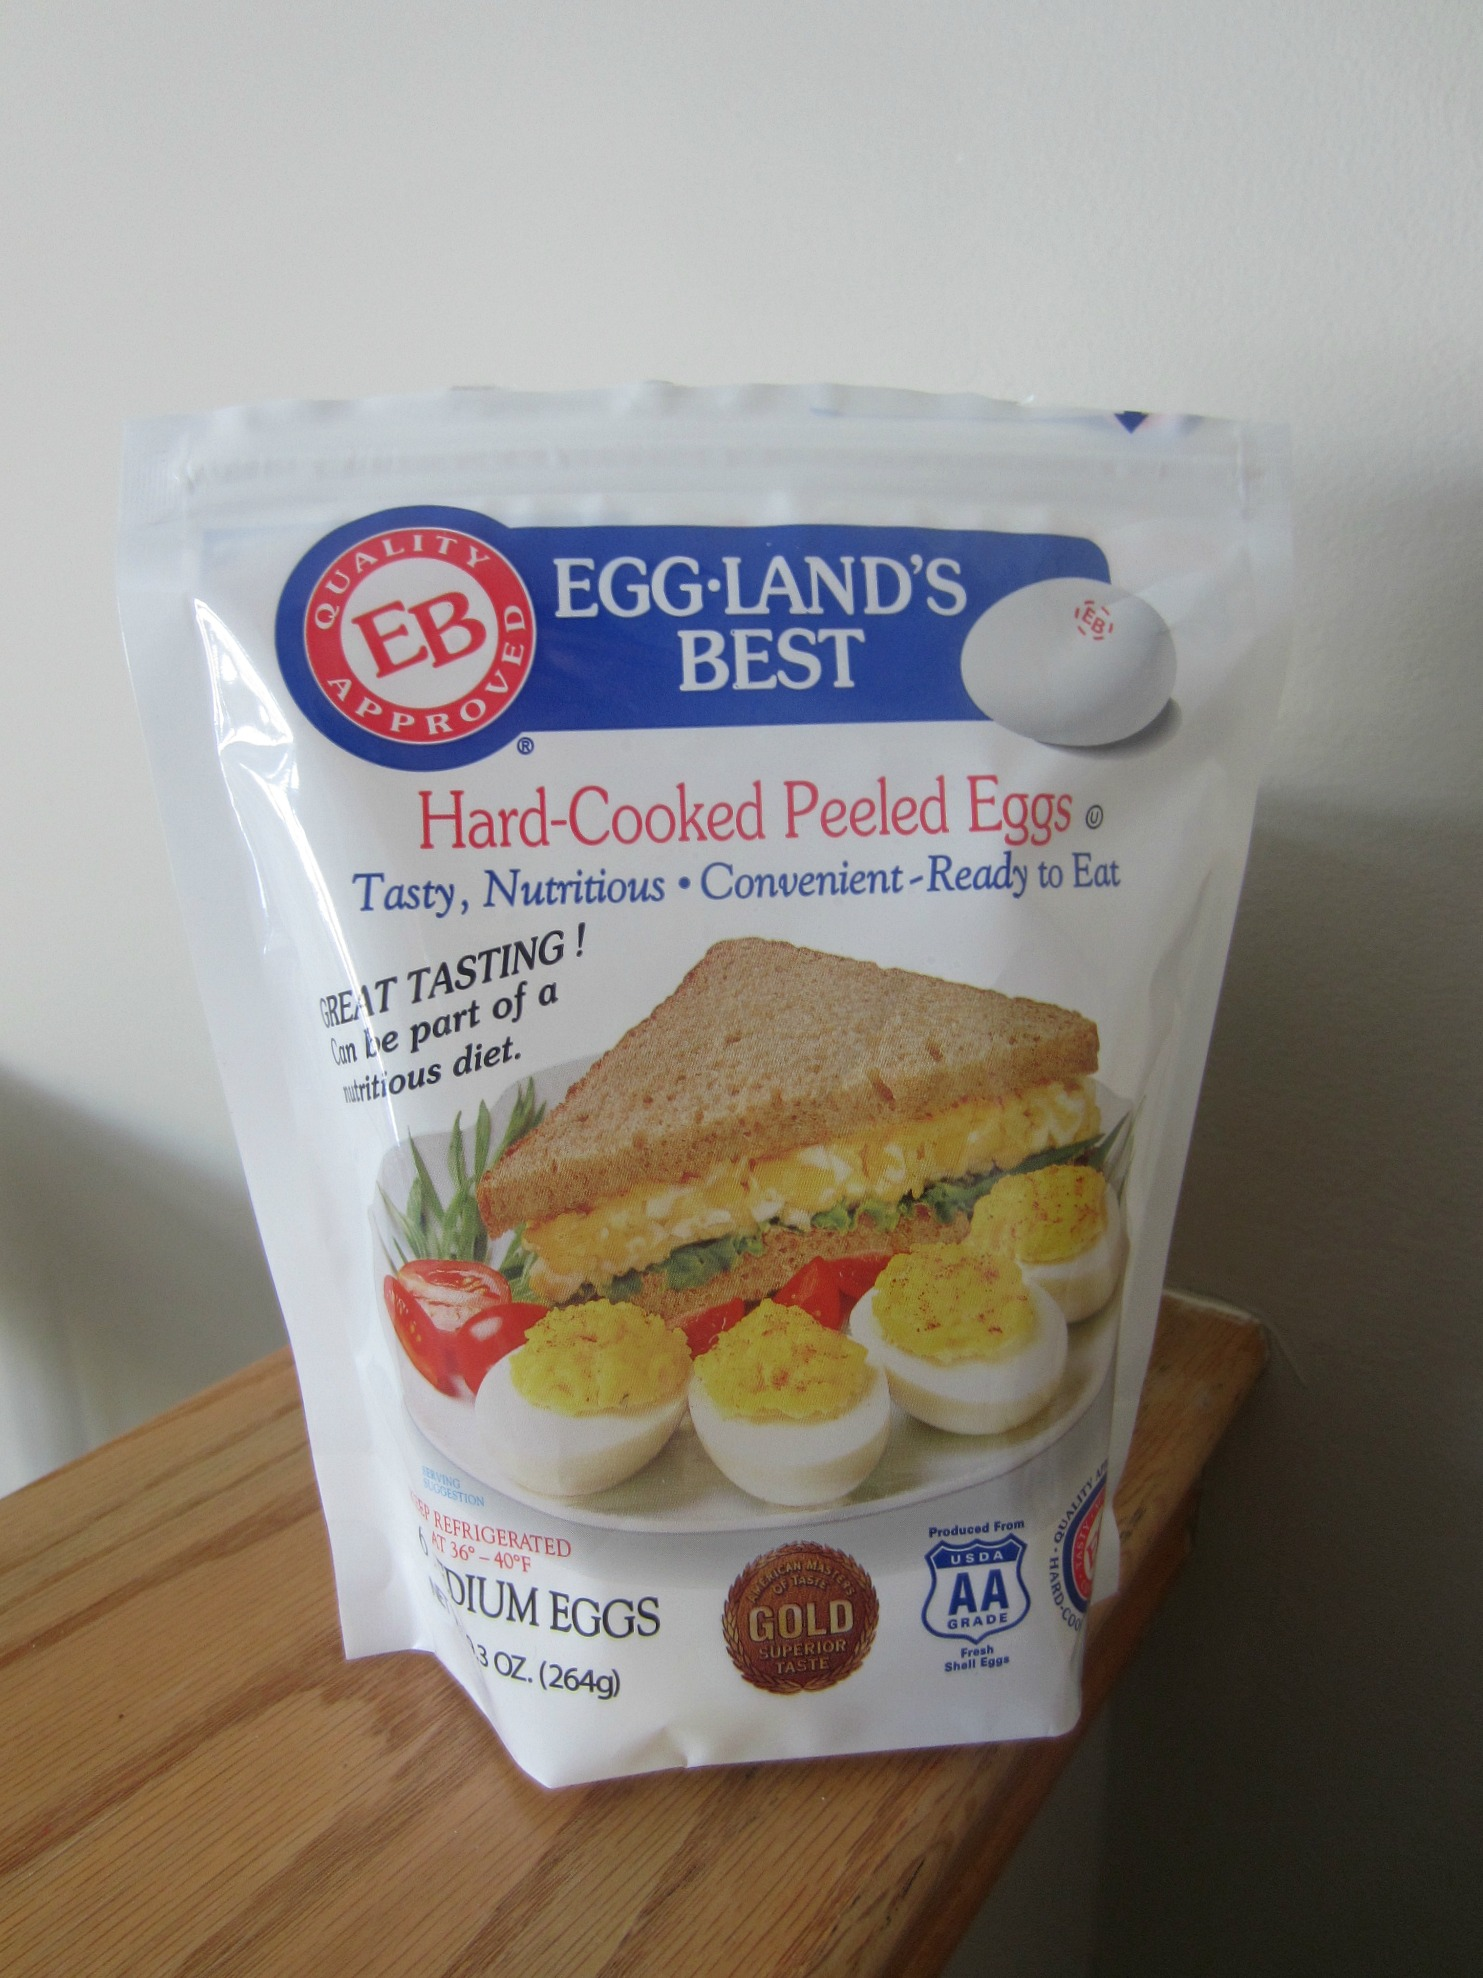 eggland's best hard-cooked peeled eggs